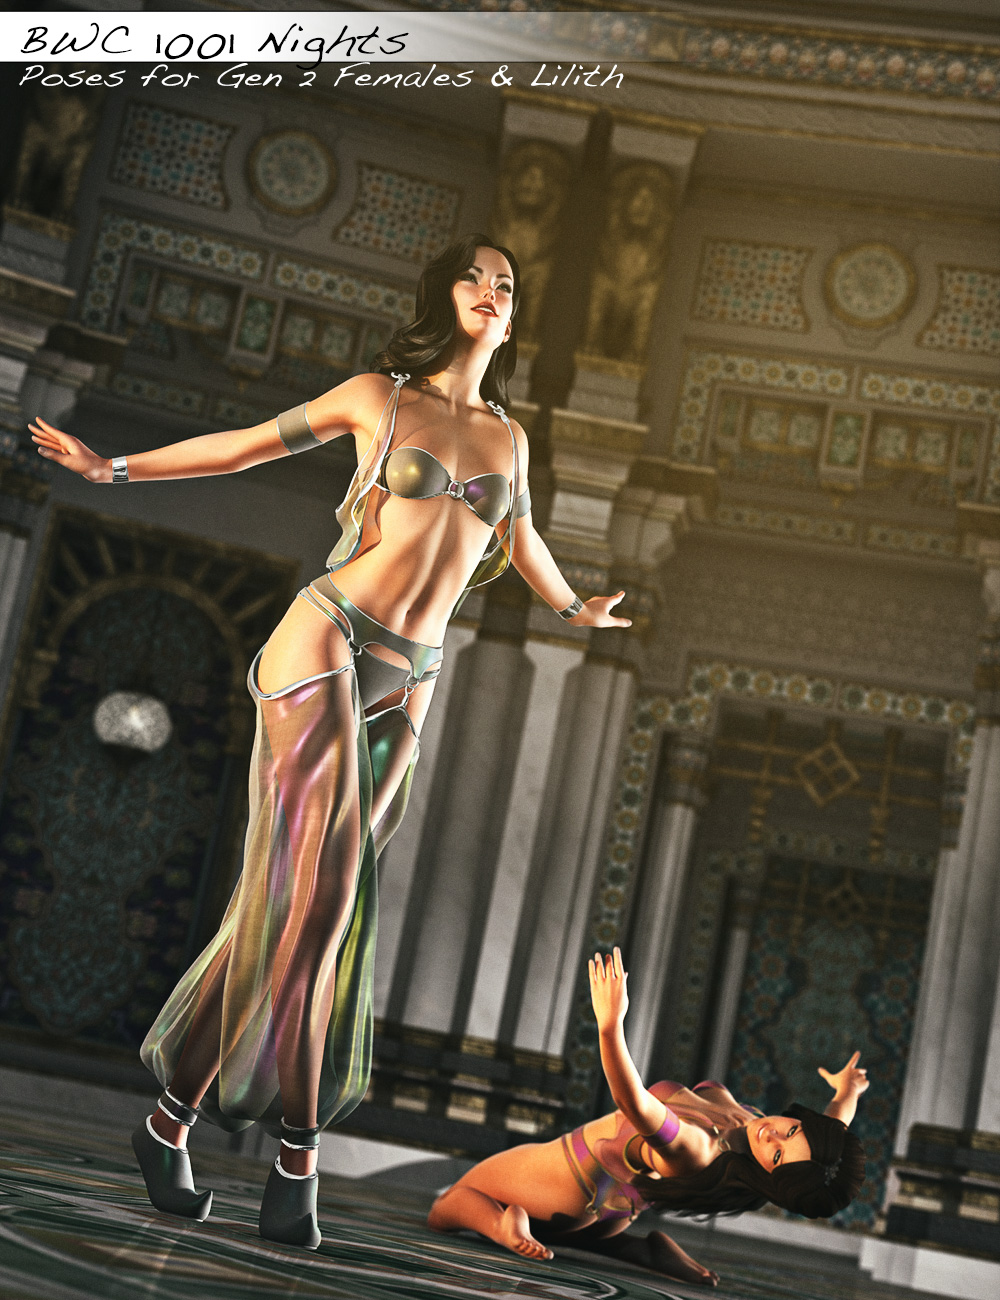 BWC 1001 Nights - Poses for Genesis 2 Female(s) and Lilith 6 by: Sedor, 3D Models by Daz 3D